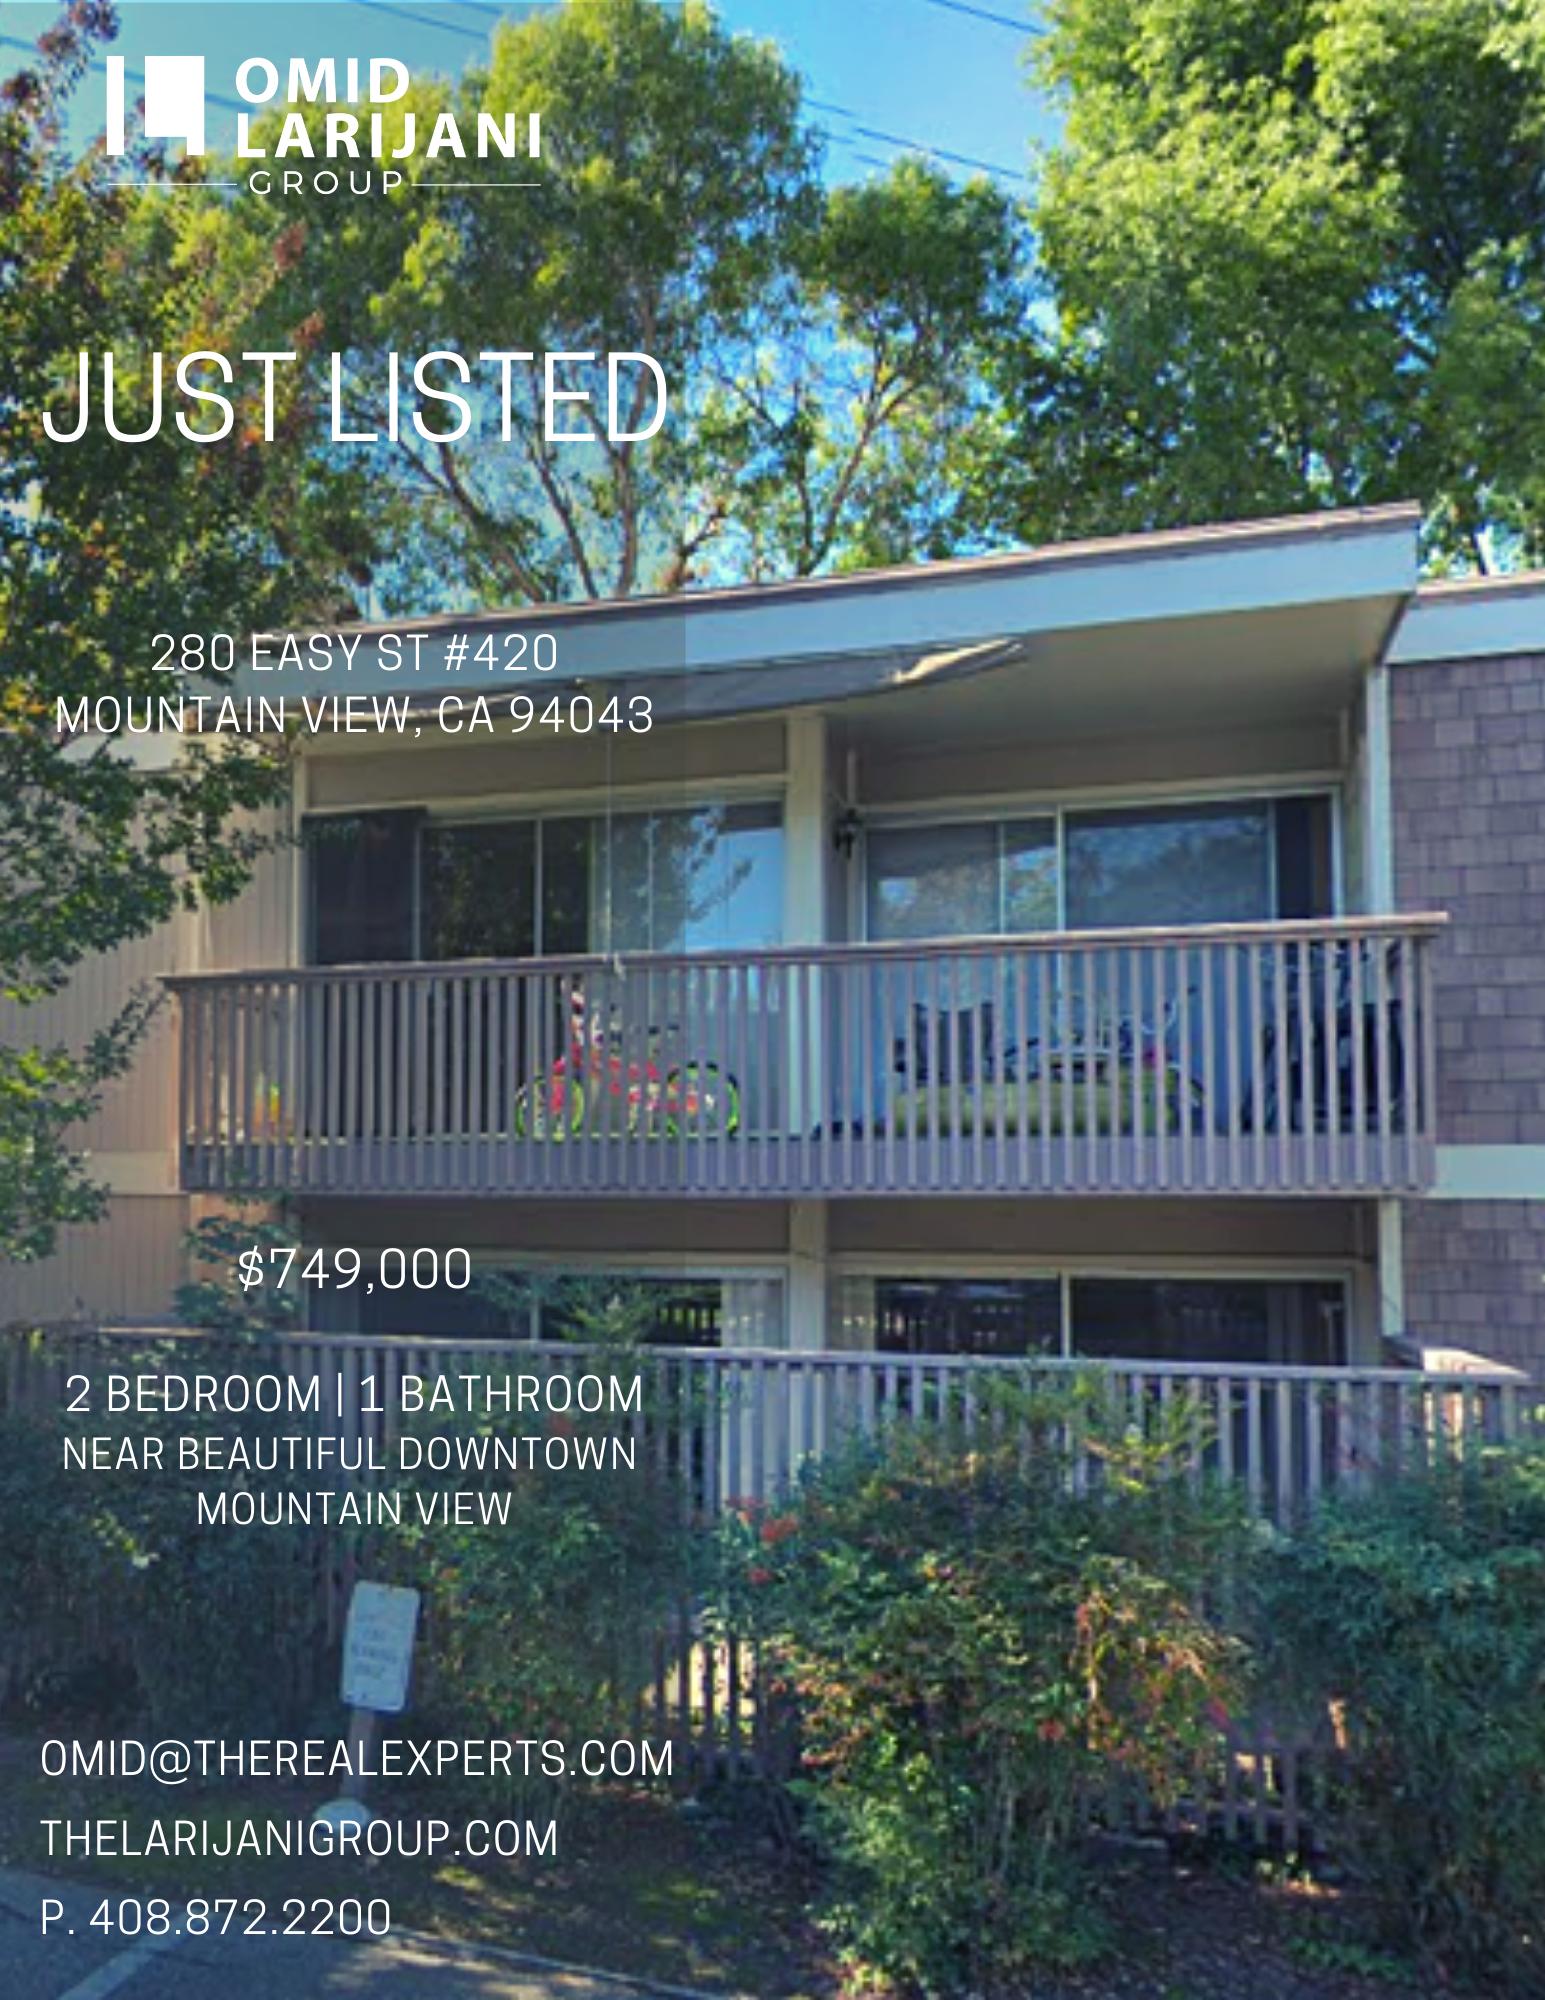 JUST LISTED! 🏡  280 EASY ST UNIT 420 MOUNTAIN VIEW 94043    CALL 408.872.2200  #larijanigroup #realtor #realestate #properties #santaclara #sanjose #sunnyvale #cupertino #losgatos #willowglen #campbell #saratoga #mountainview #paloalto #milpitas #fremont #redwoodcity #houses #investor #investment #siliconvalley #siliconvalleyrealestate #siliconvalleyproperties #homesforsale #california #bayarea #realestatebroker #realestateinvestor #homebuyers